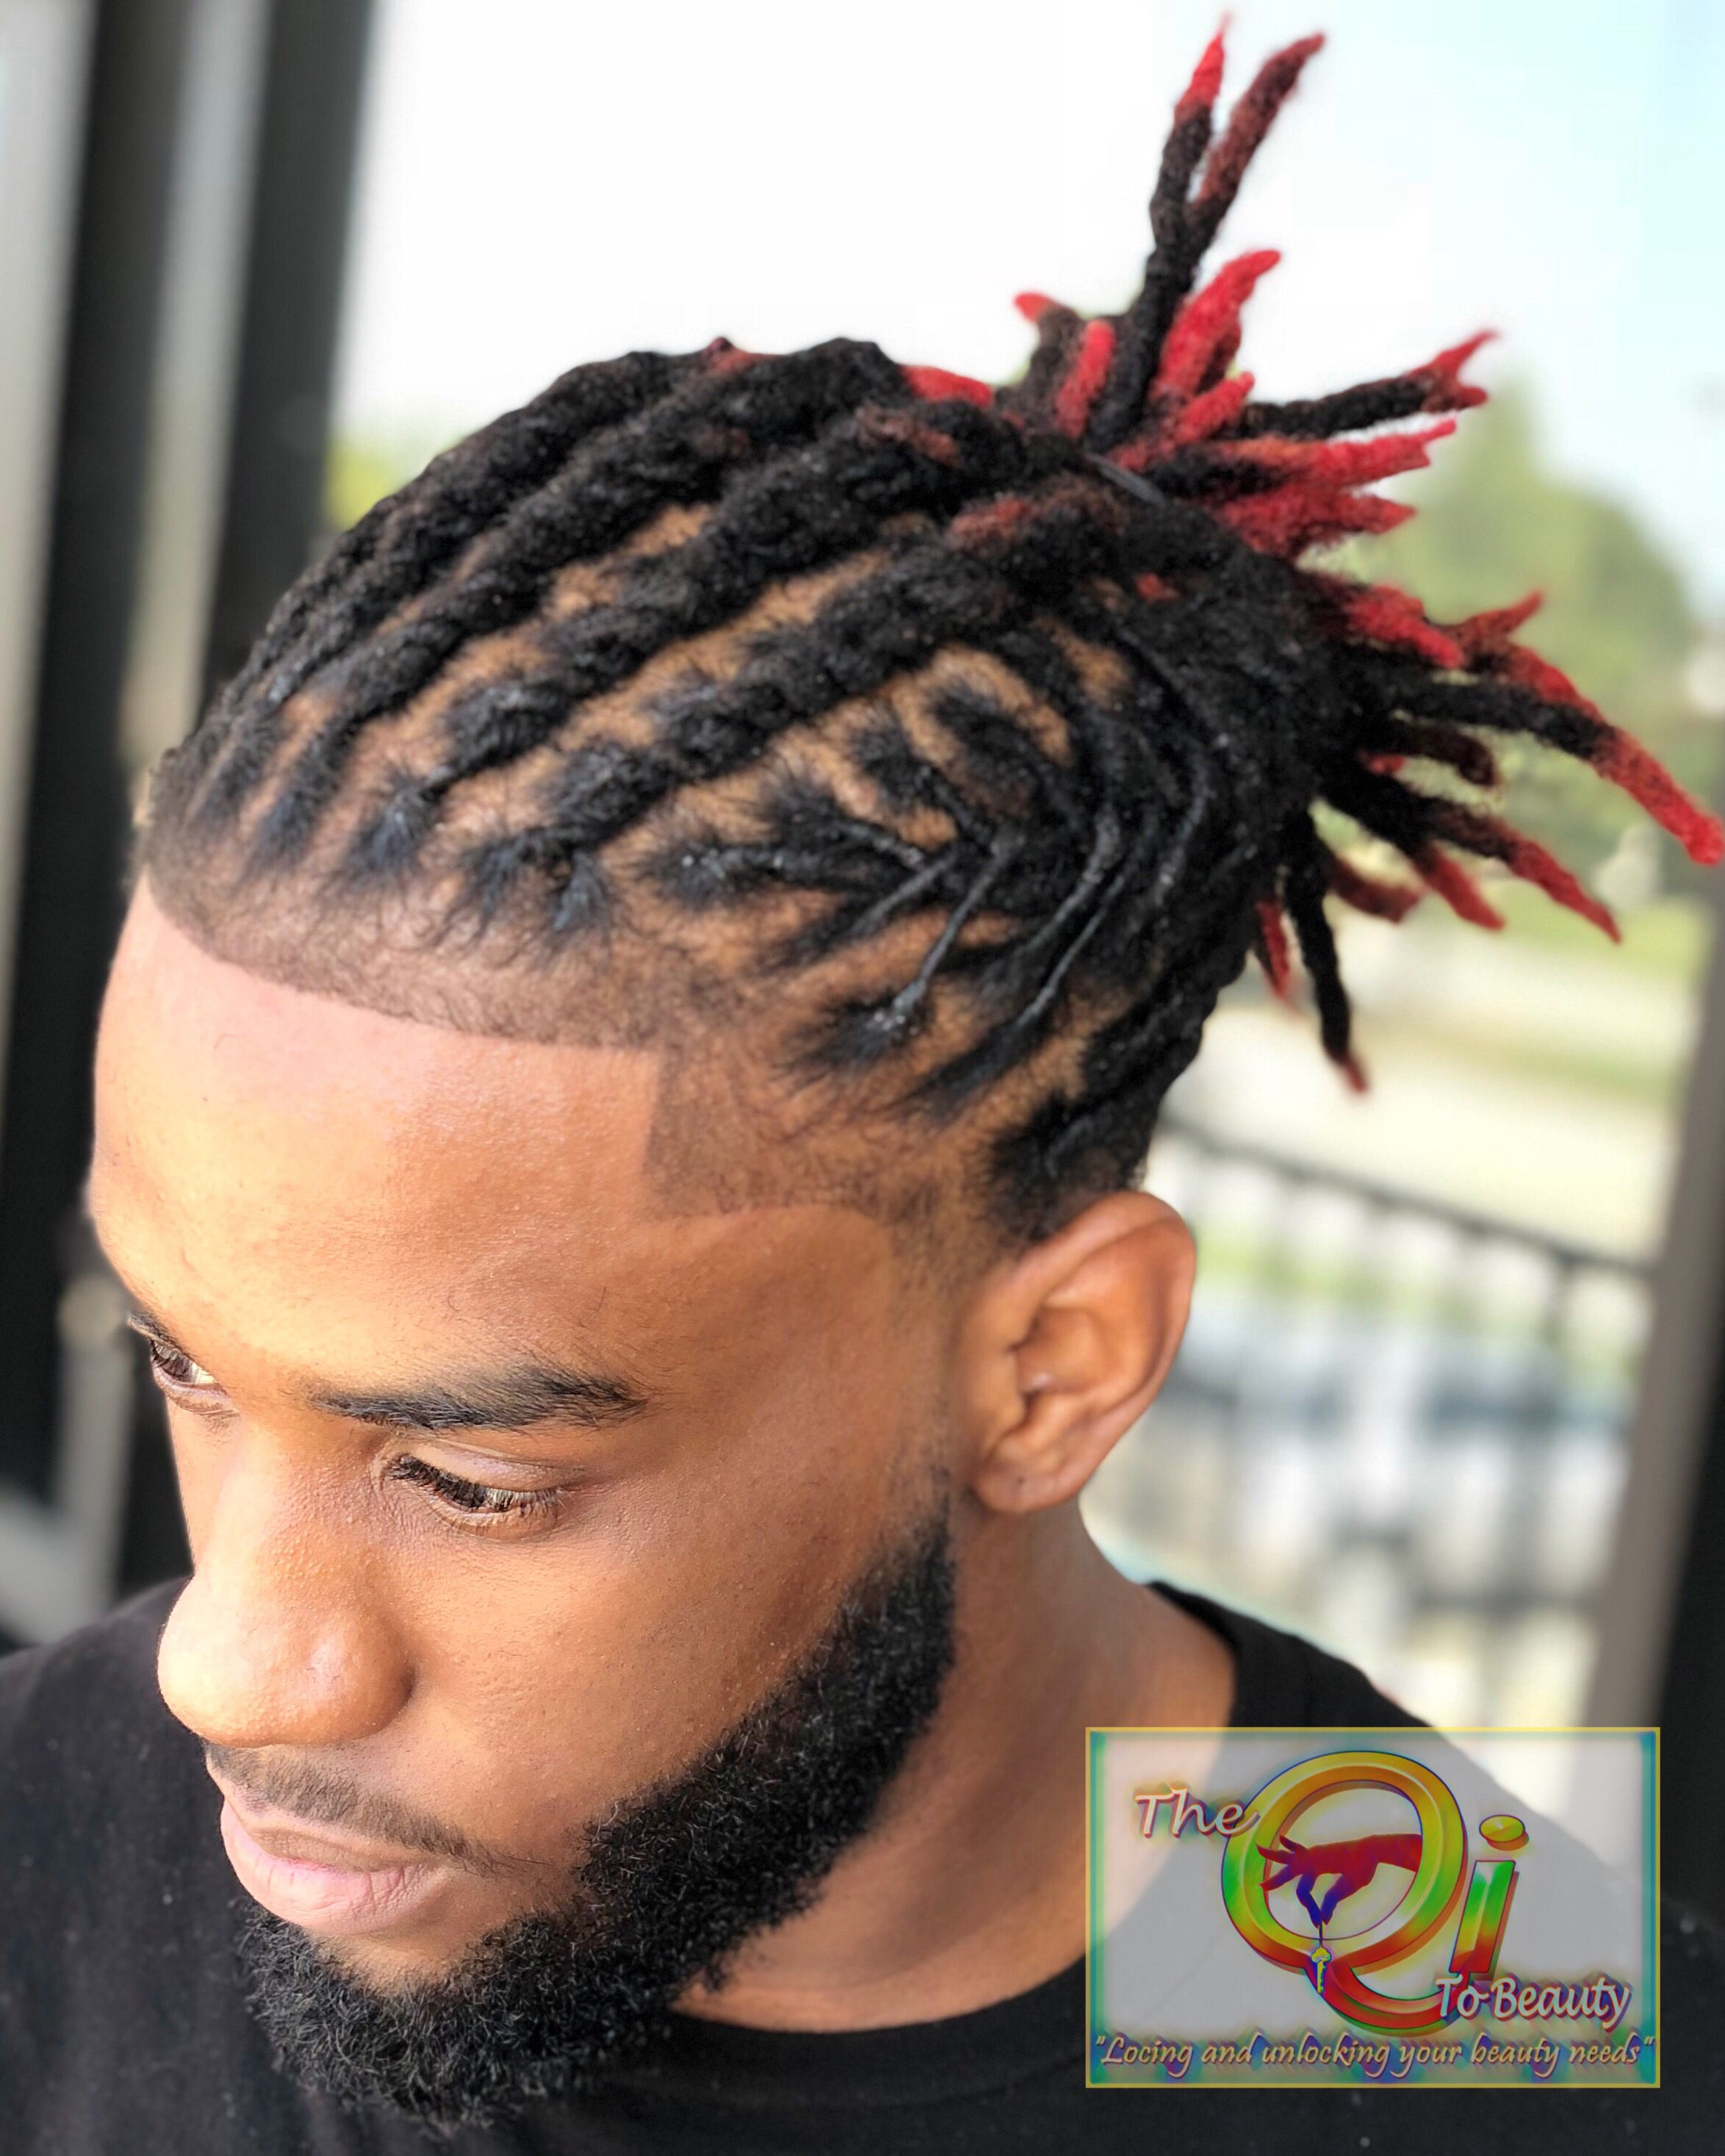 I Am The Qi To Beauty Theqitobeauty Instagram Photos And Videos Dread Hairstyles Locs Hairstyles Hair Styles